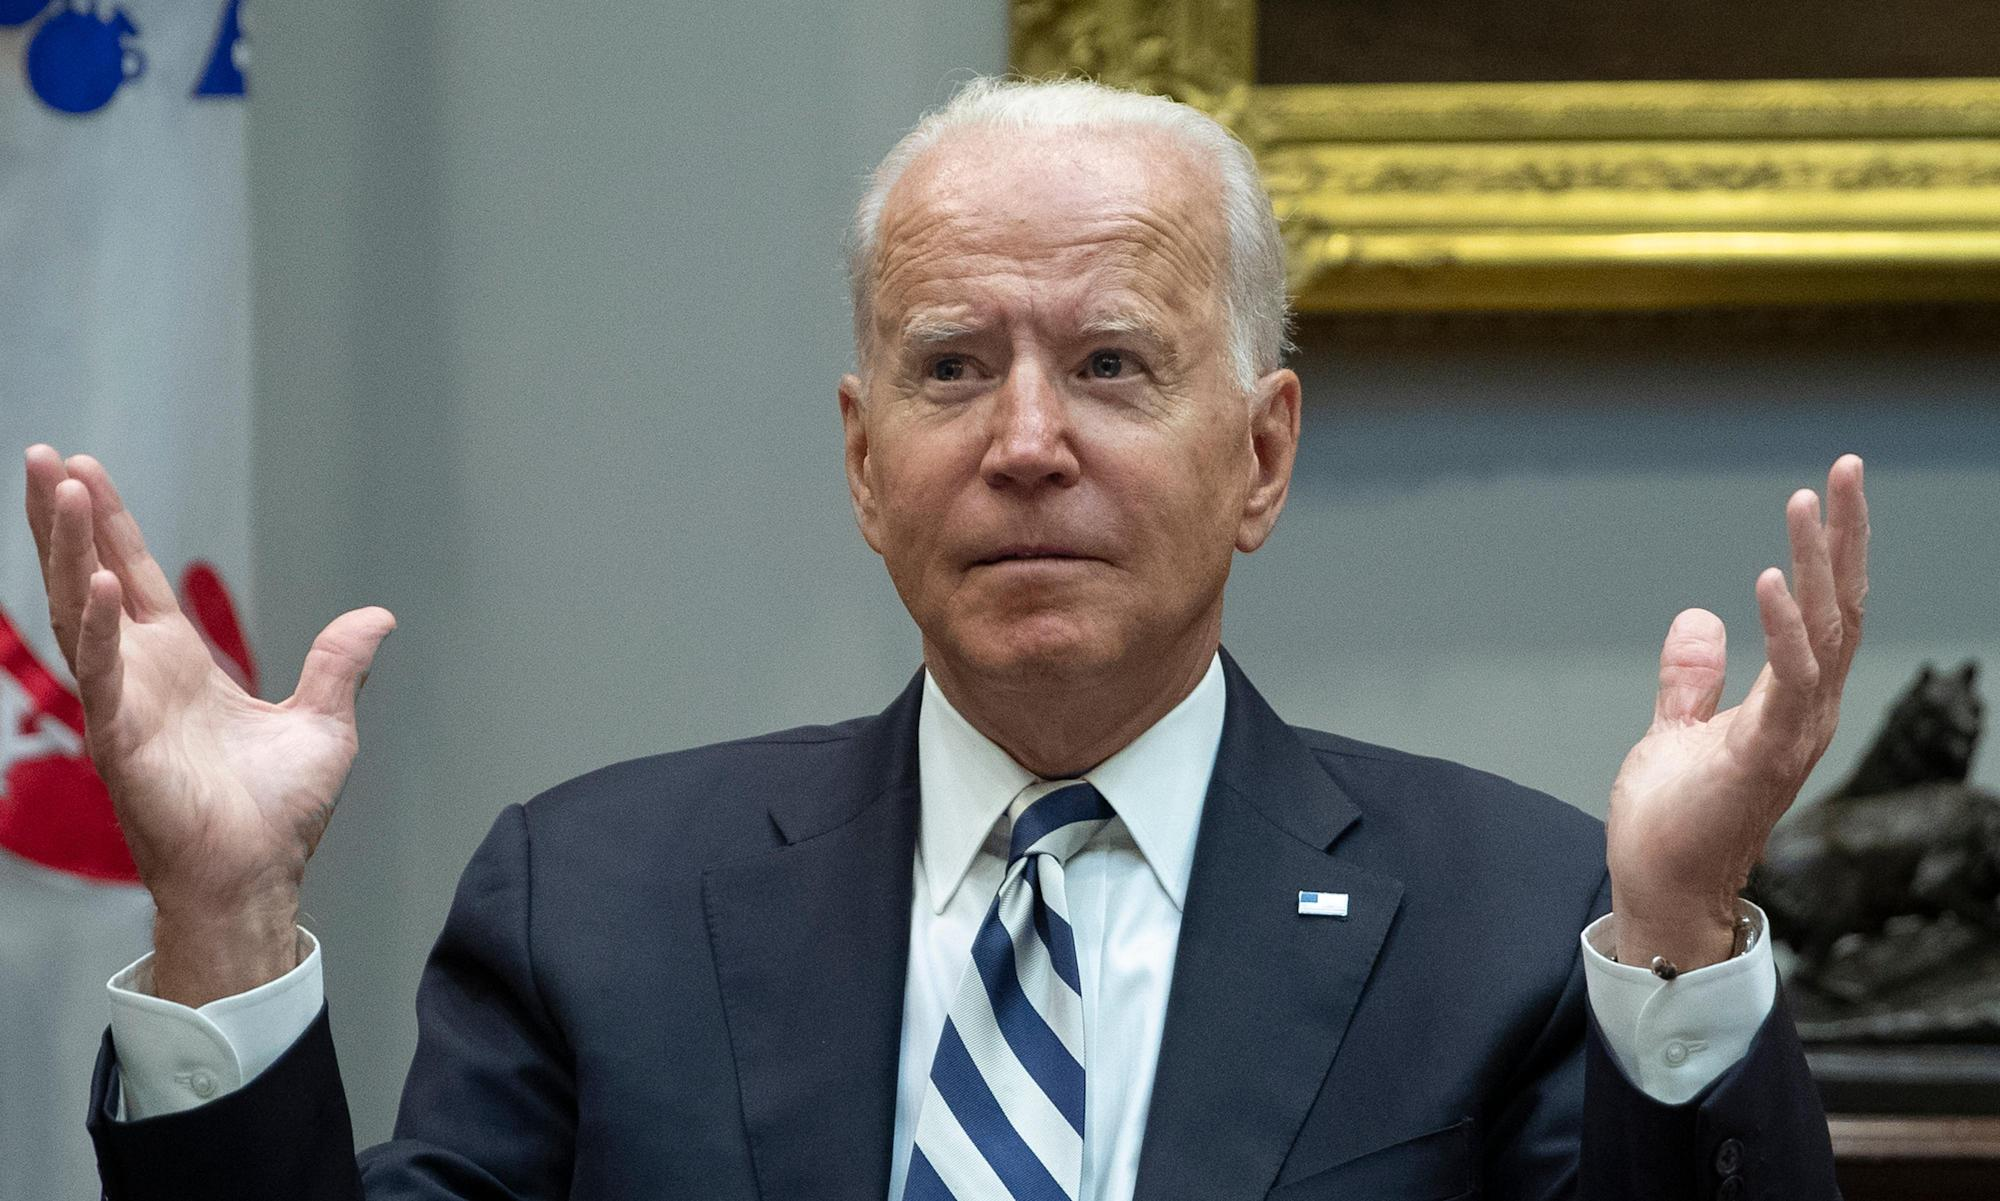 'It's chilling what is happening': a rightwing backlash to Biden takes root in Republican states